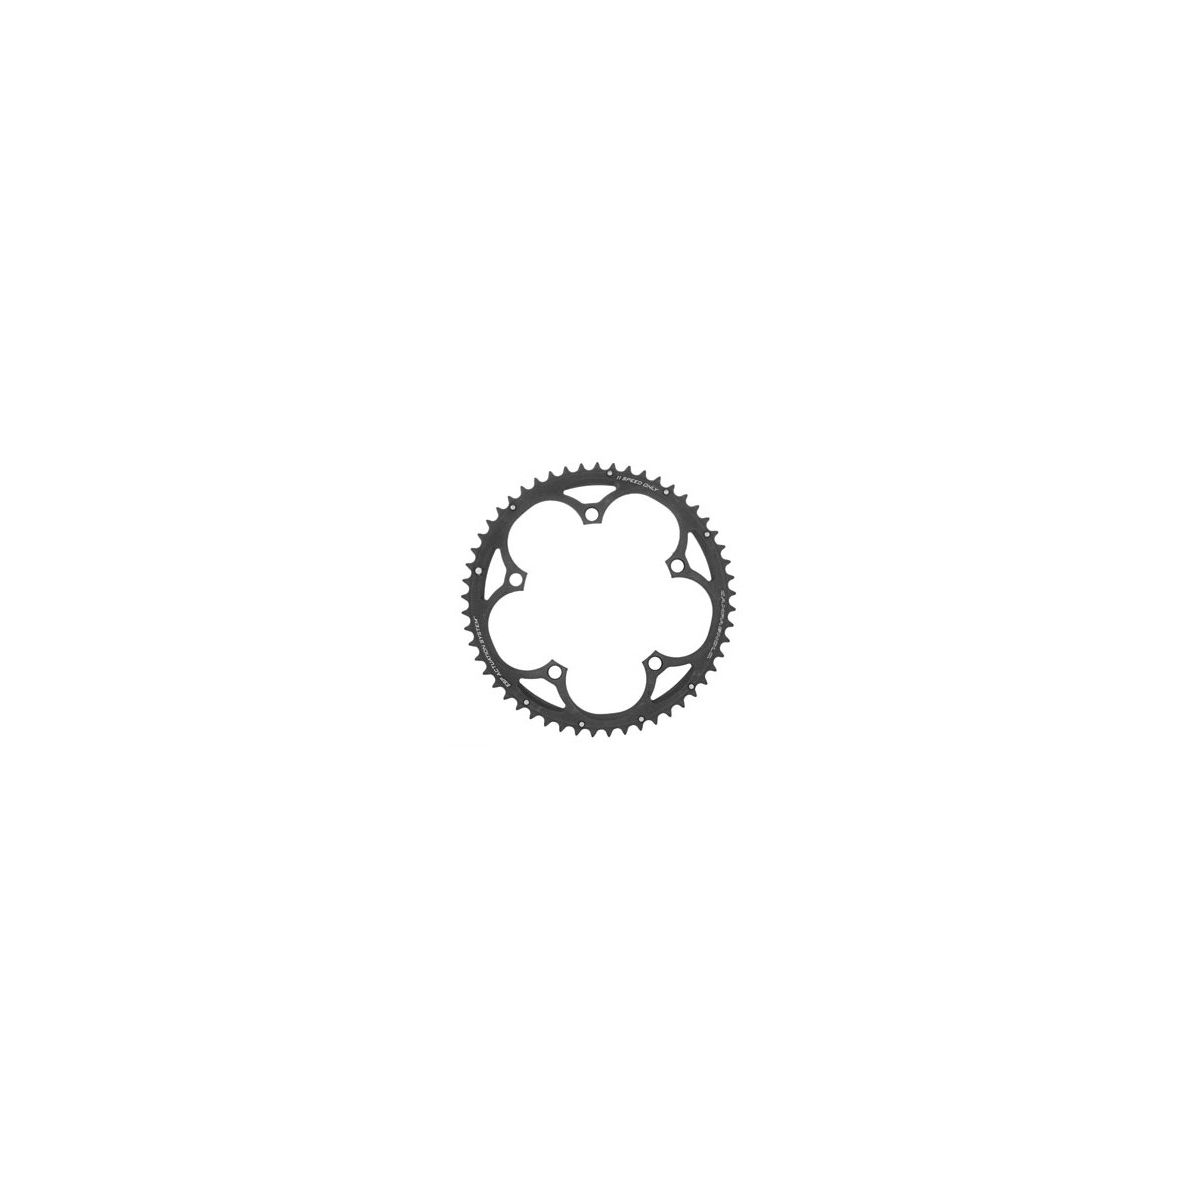 Athena 11-speed chainring